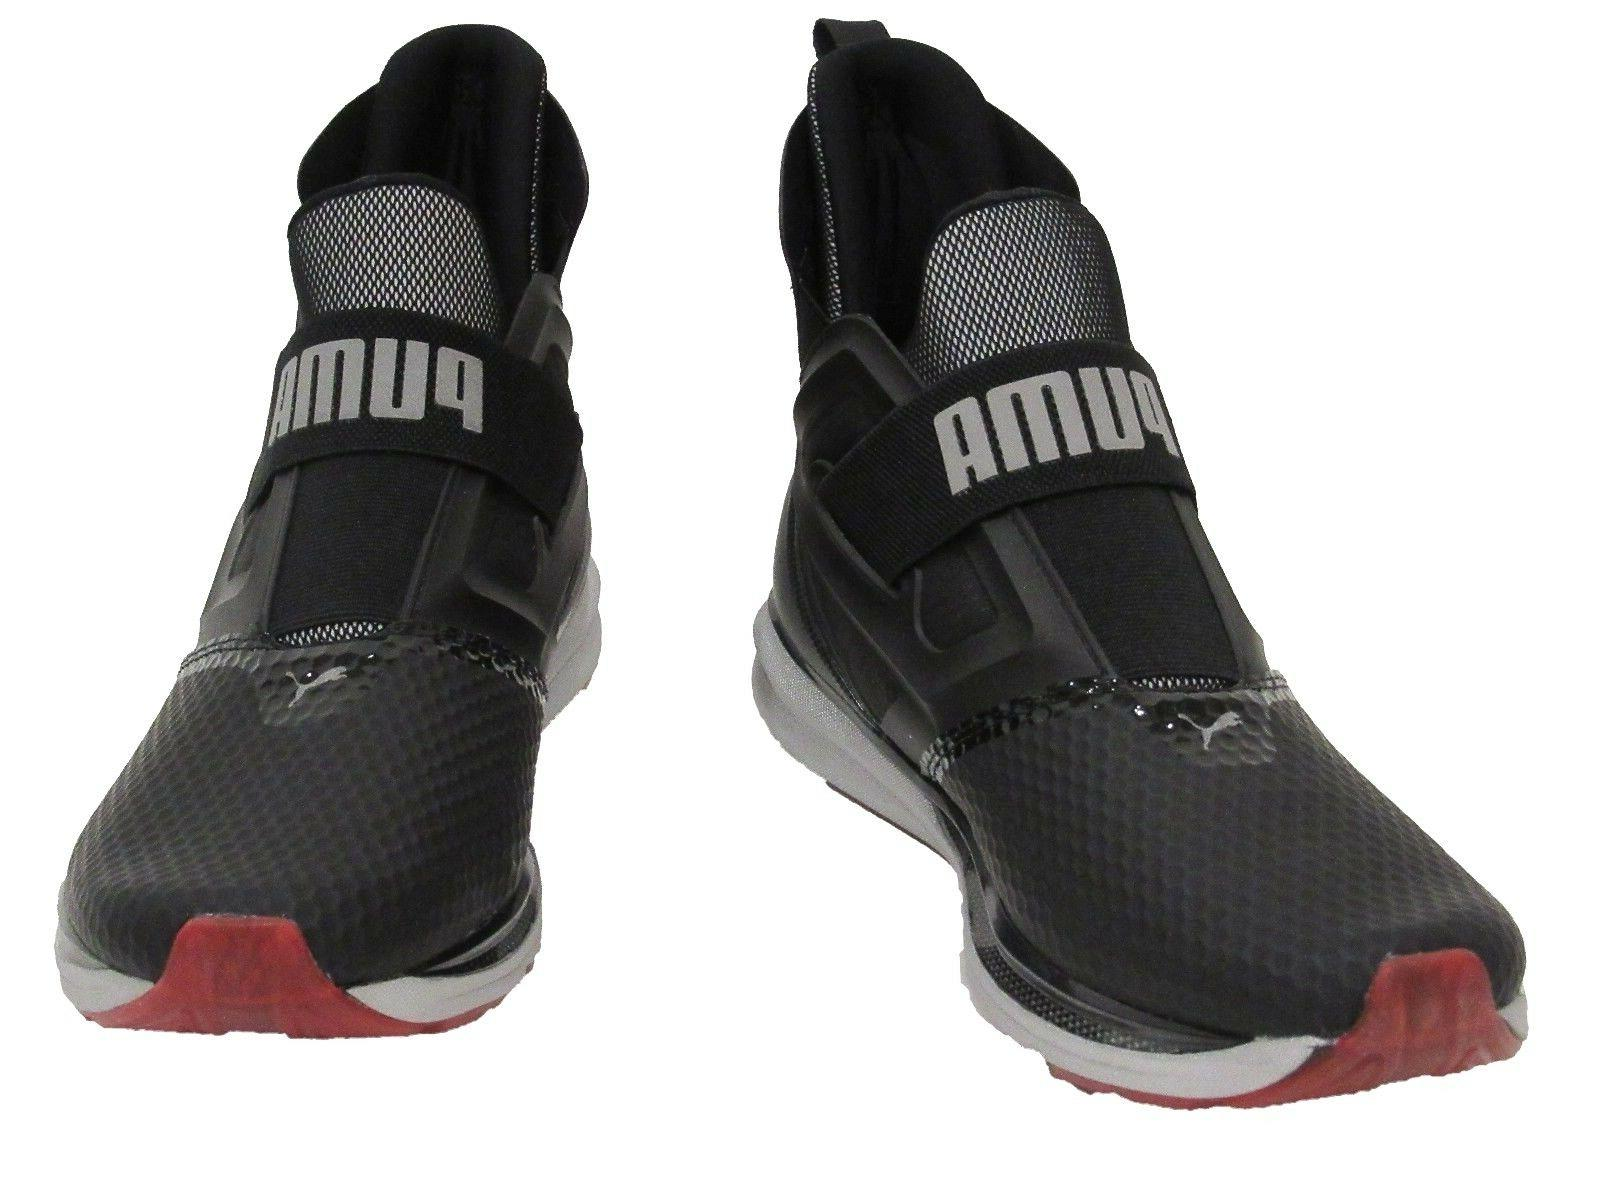 PUMA Limitless Extreme Sneakers,Brand